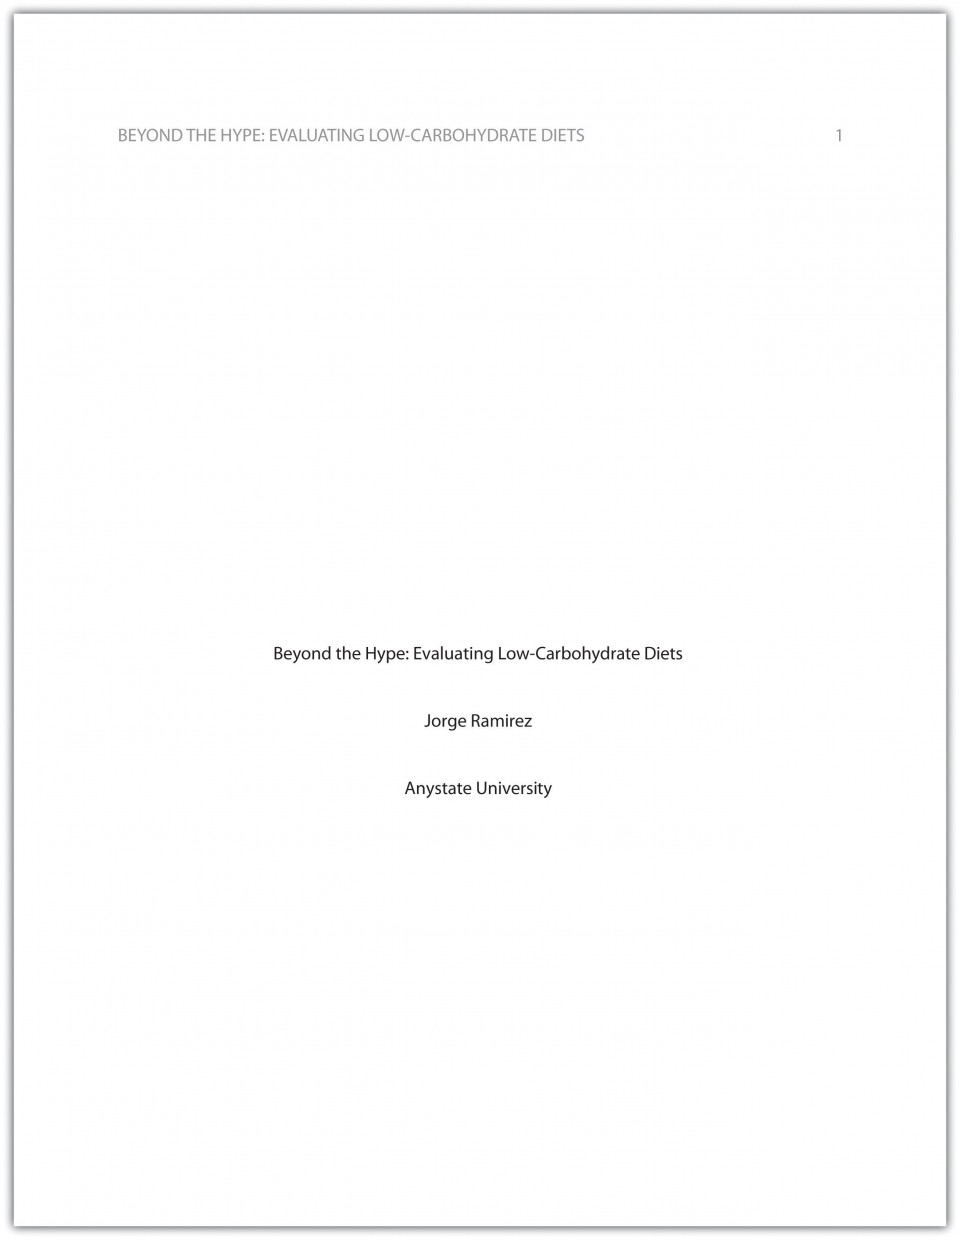 007 Cover Page For Research Paper Wondrous A Mla Example Doc Turabian 960